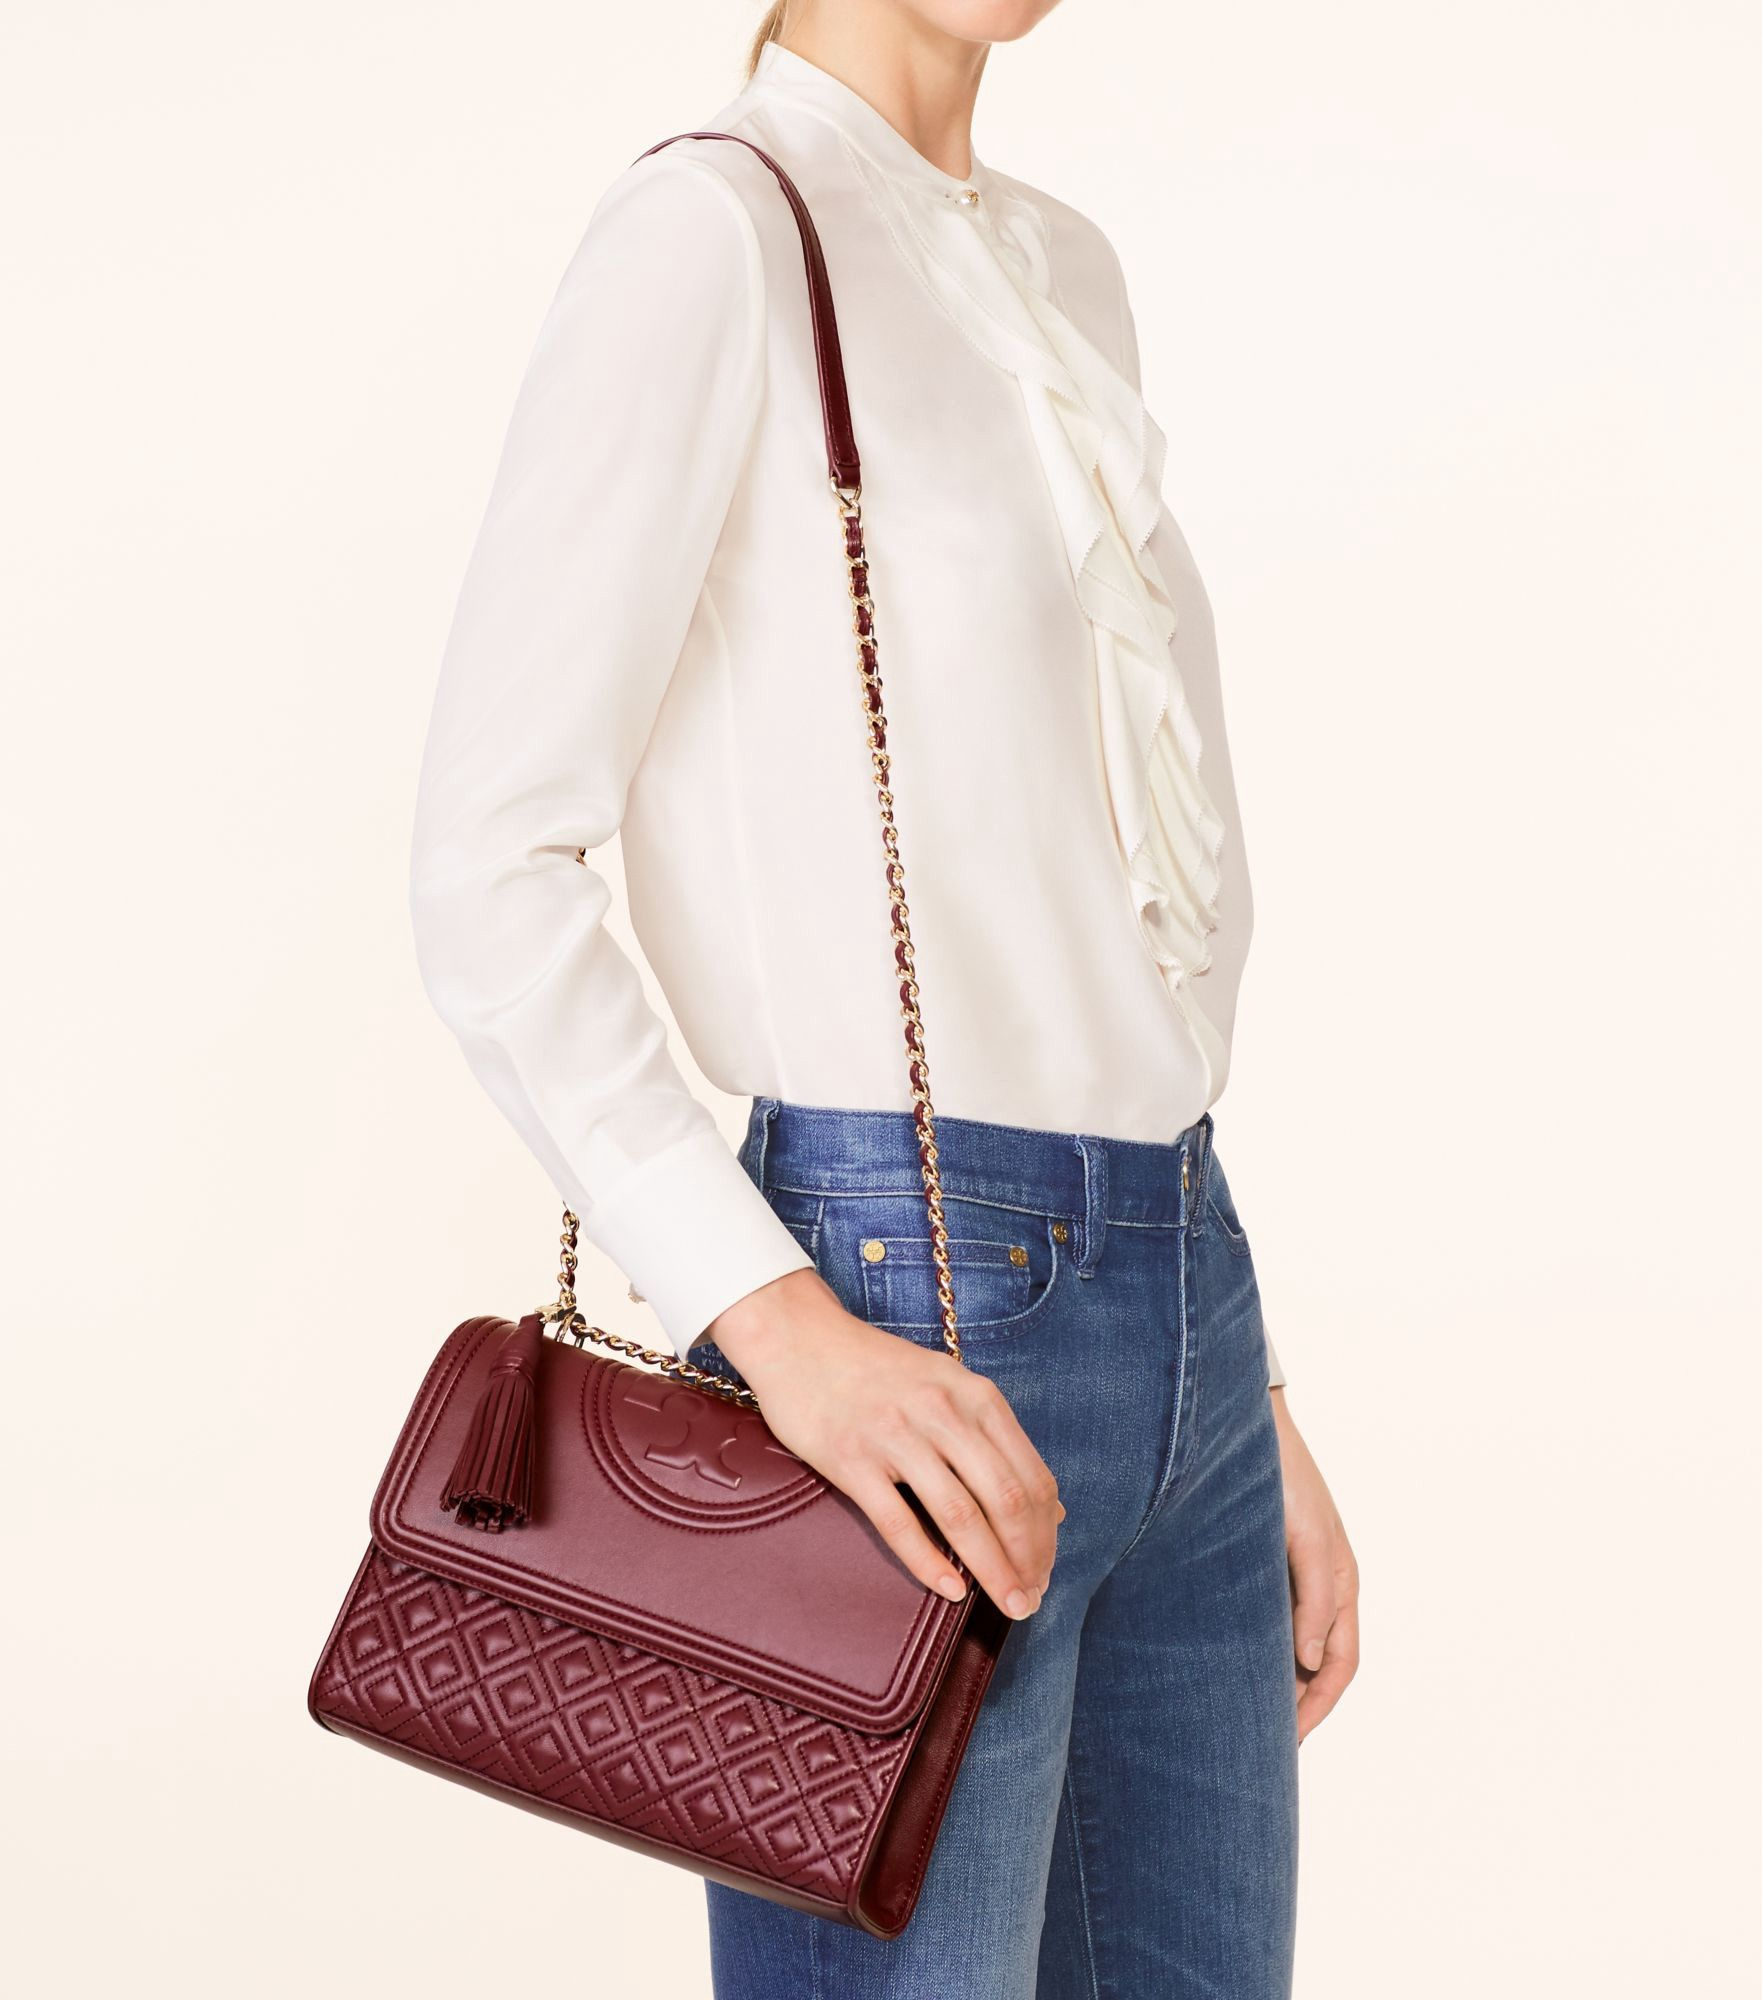 fc8f6dc2746 TORY BURCH Fleming Convertible Shoulder Bag.  toryburch  bags  shoulder bags   leather